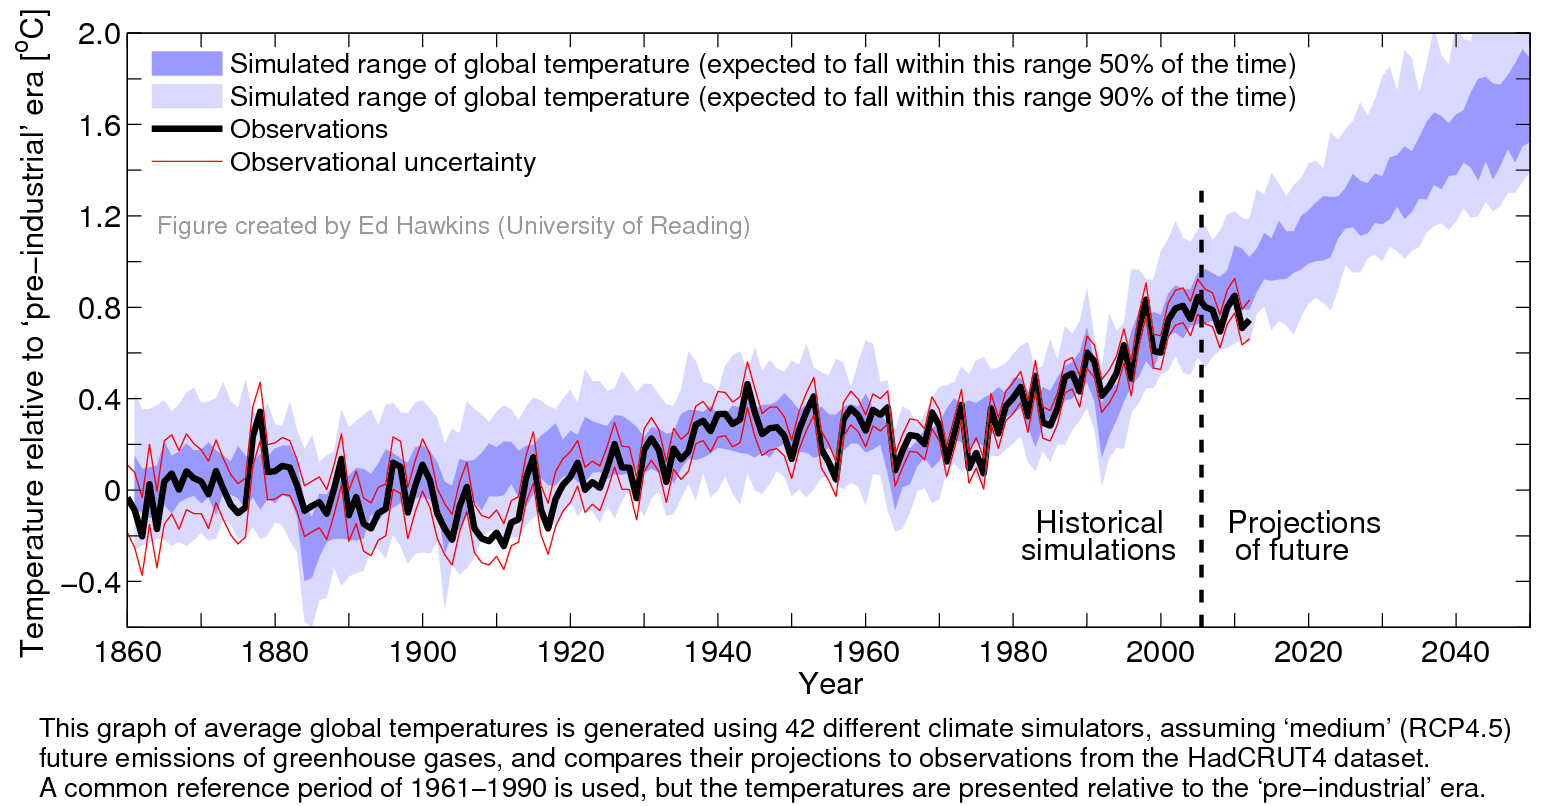 Source: http://www.climate-lab-book.ac.uk/2013/recent-slowdown/